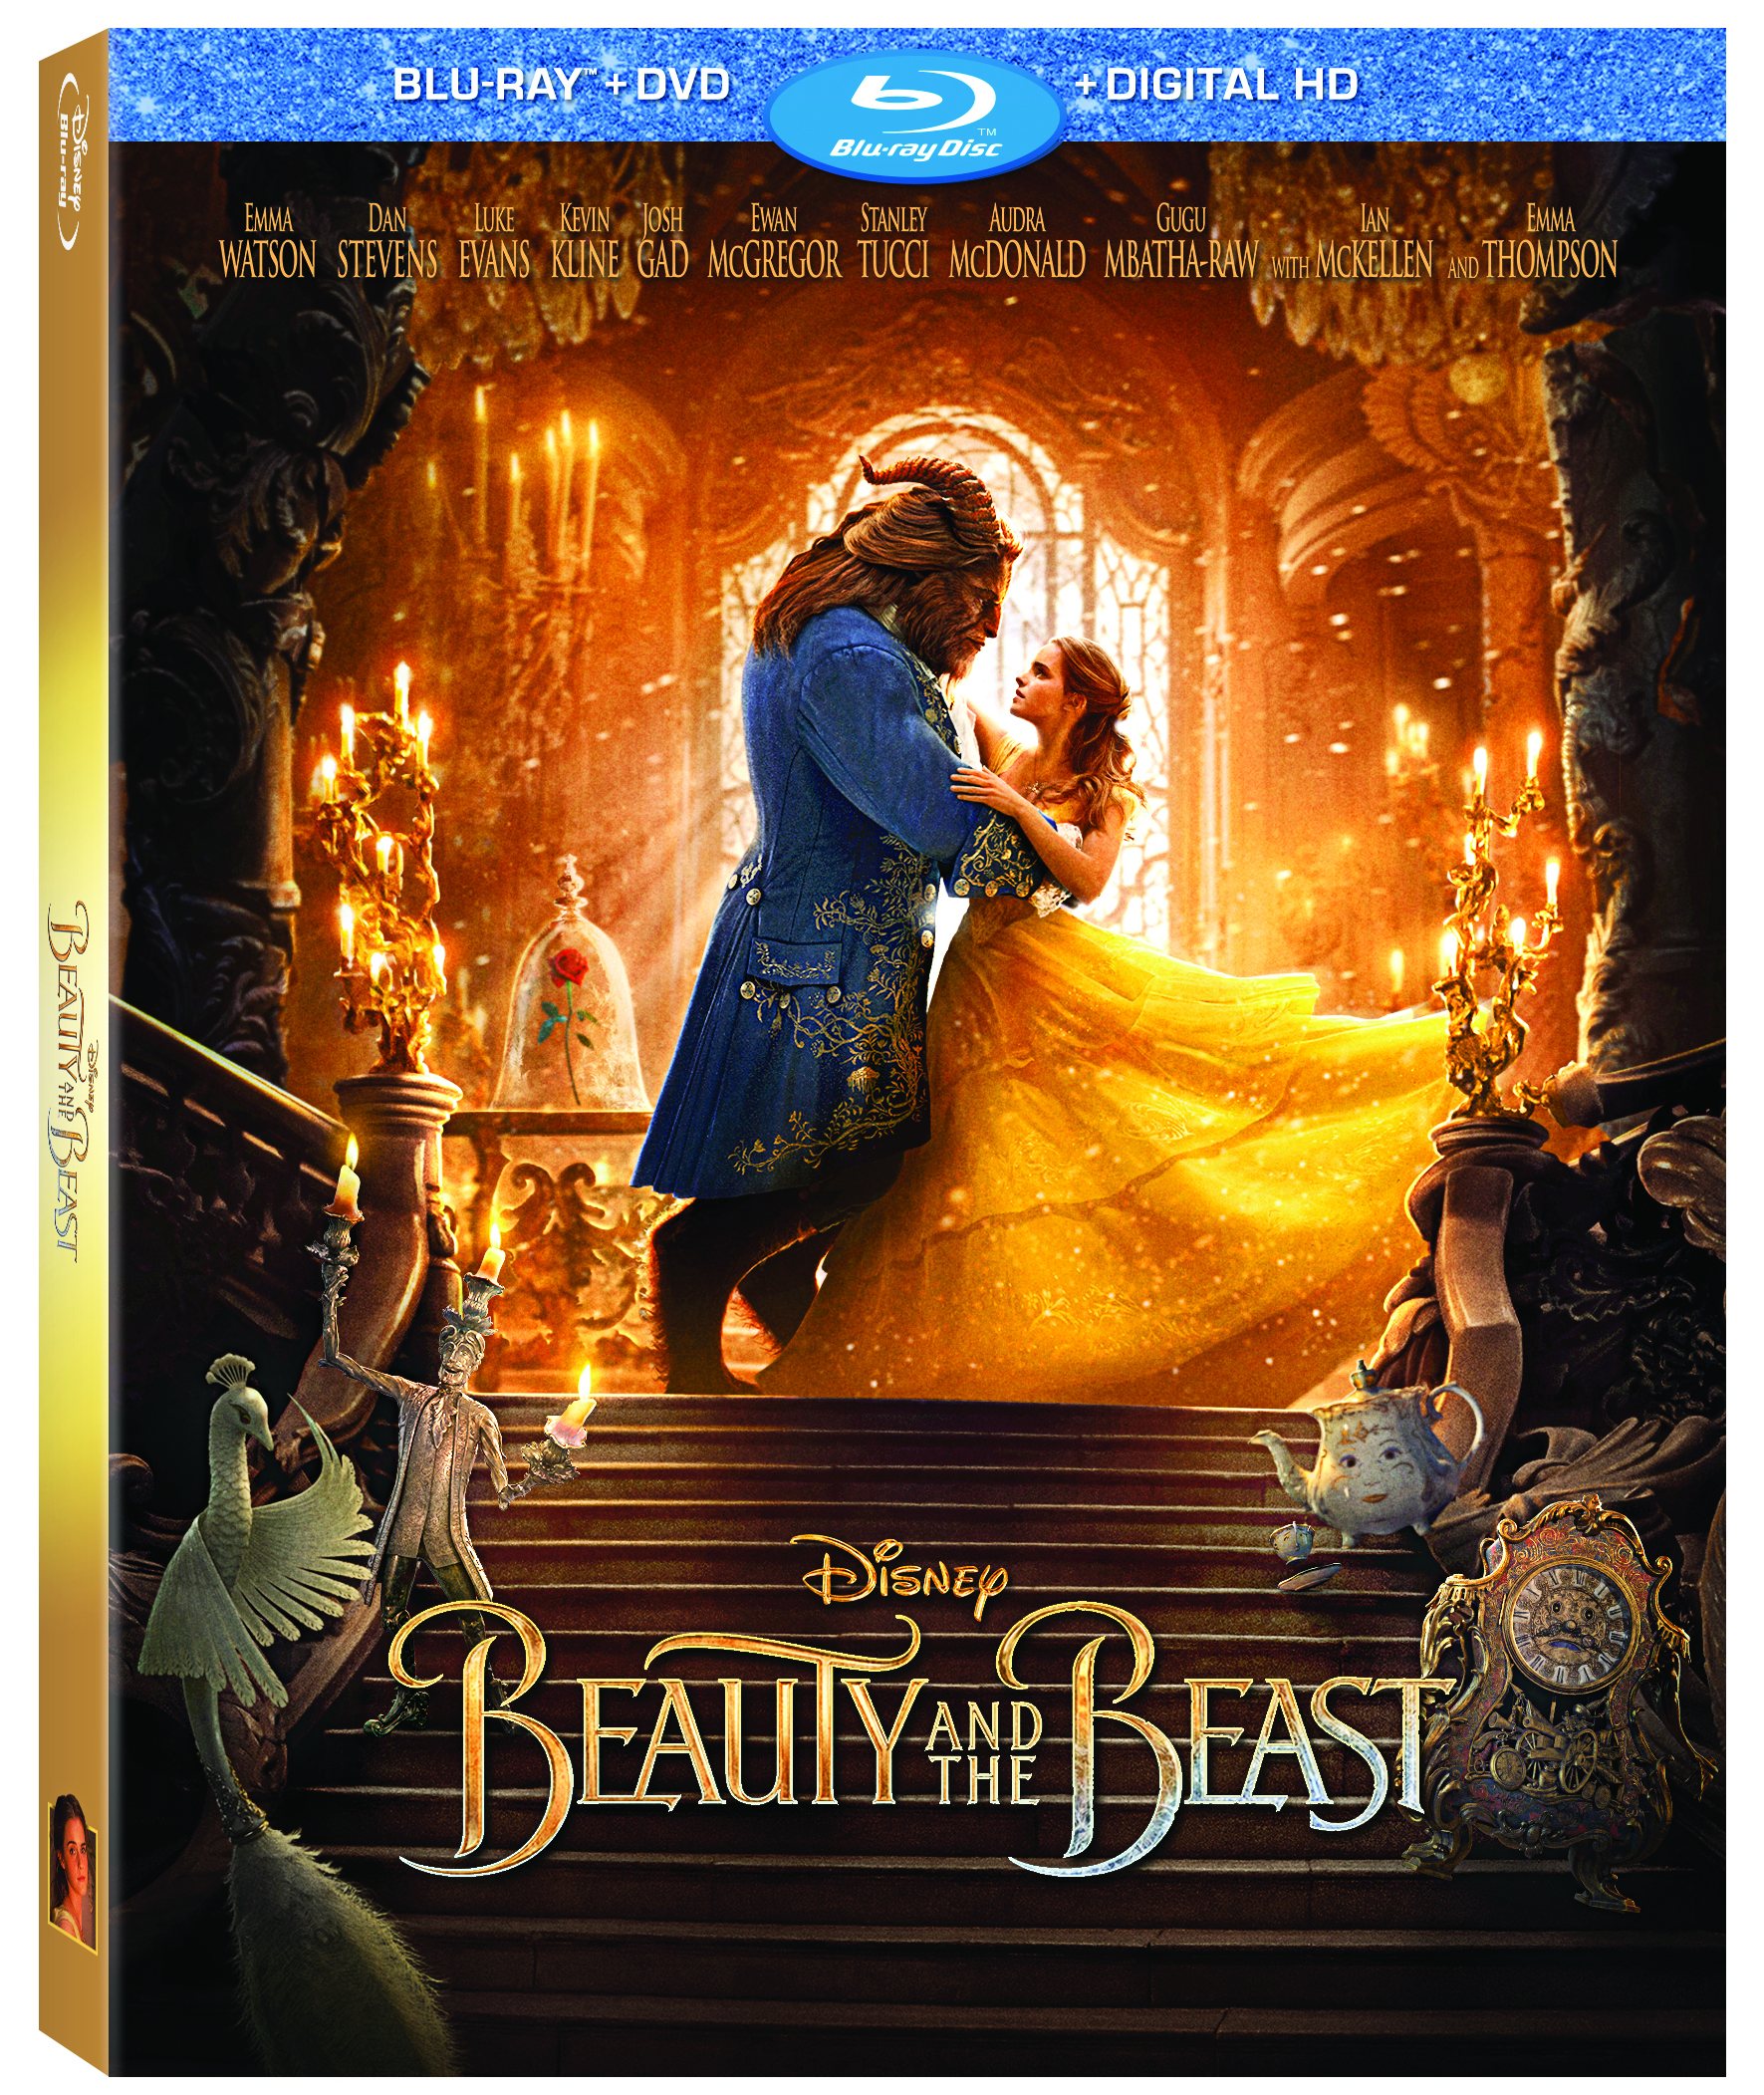 Disney's Beauty And The Beast Arriving On Digital HD, DVD